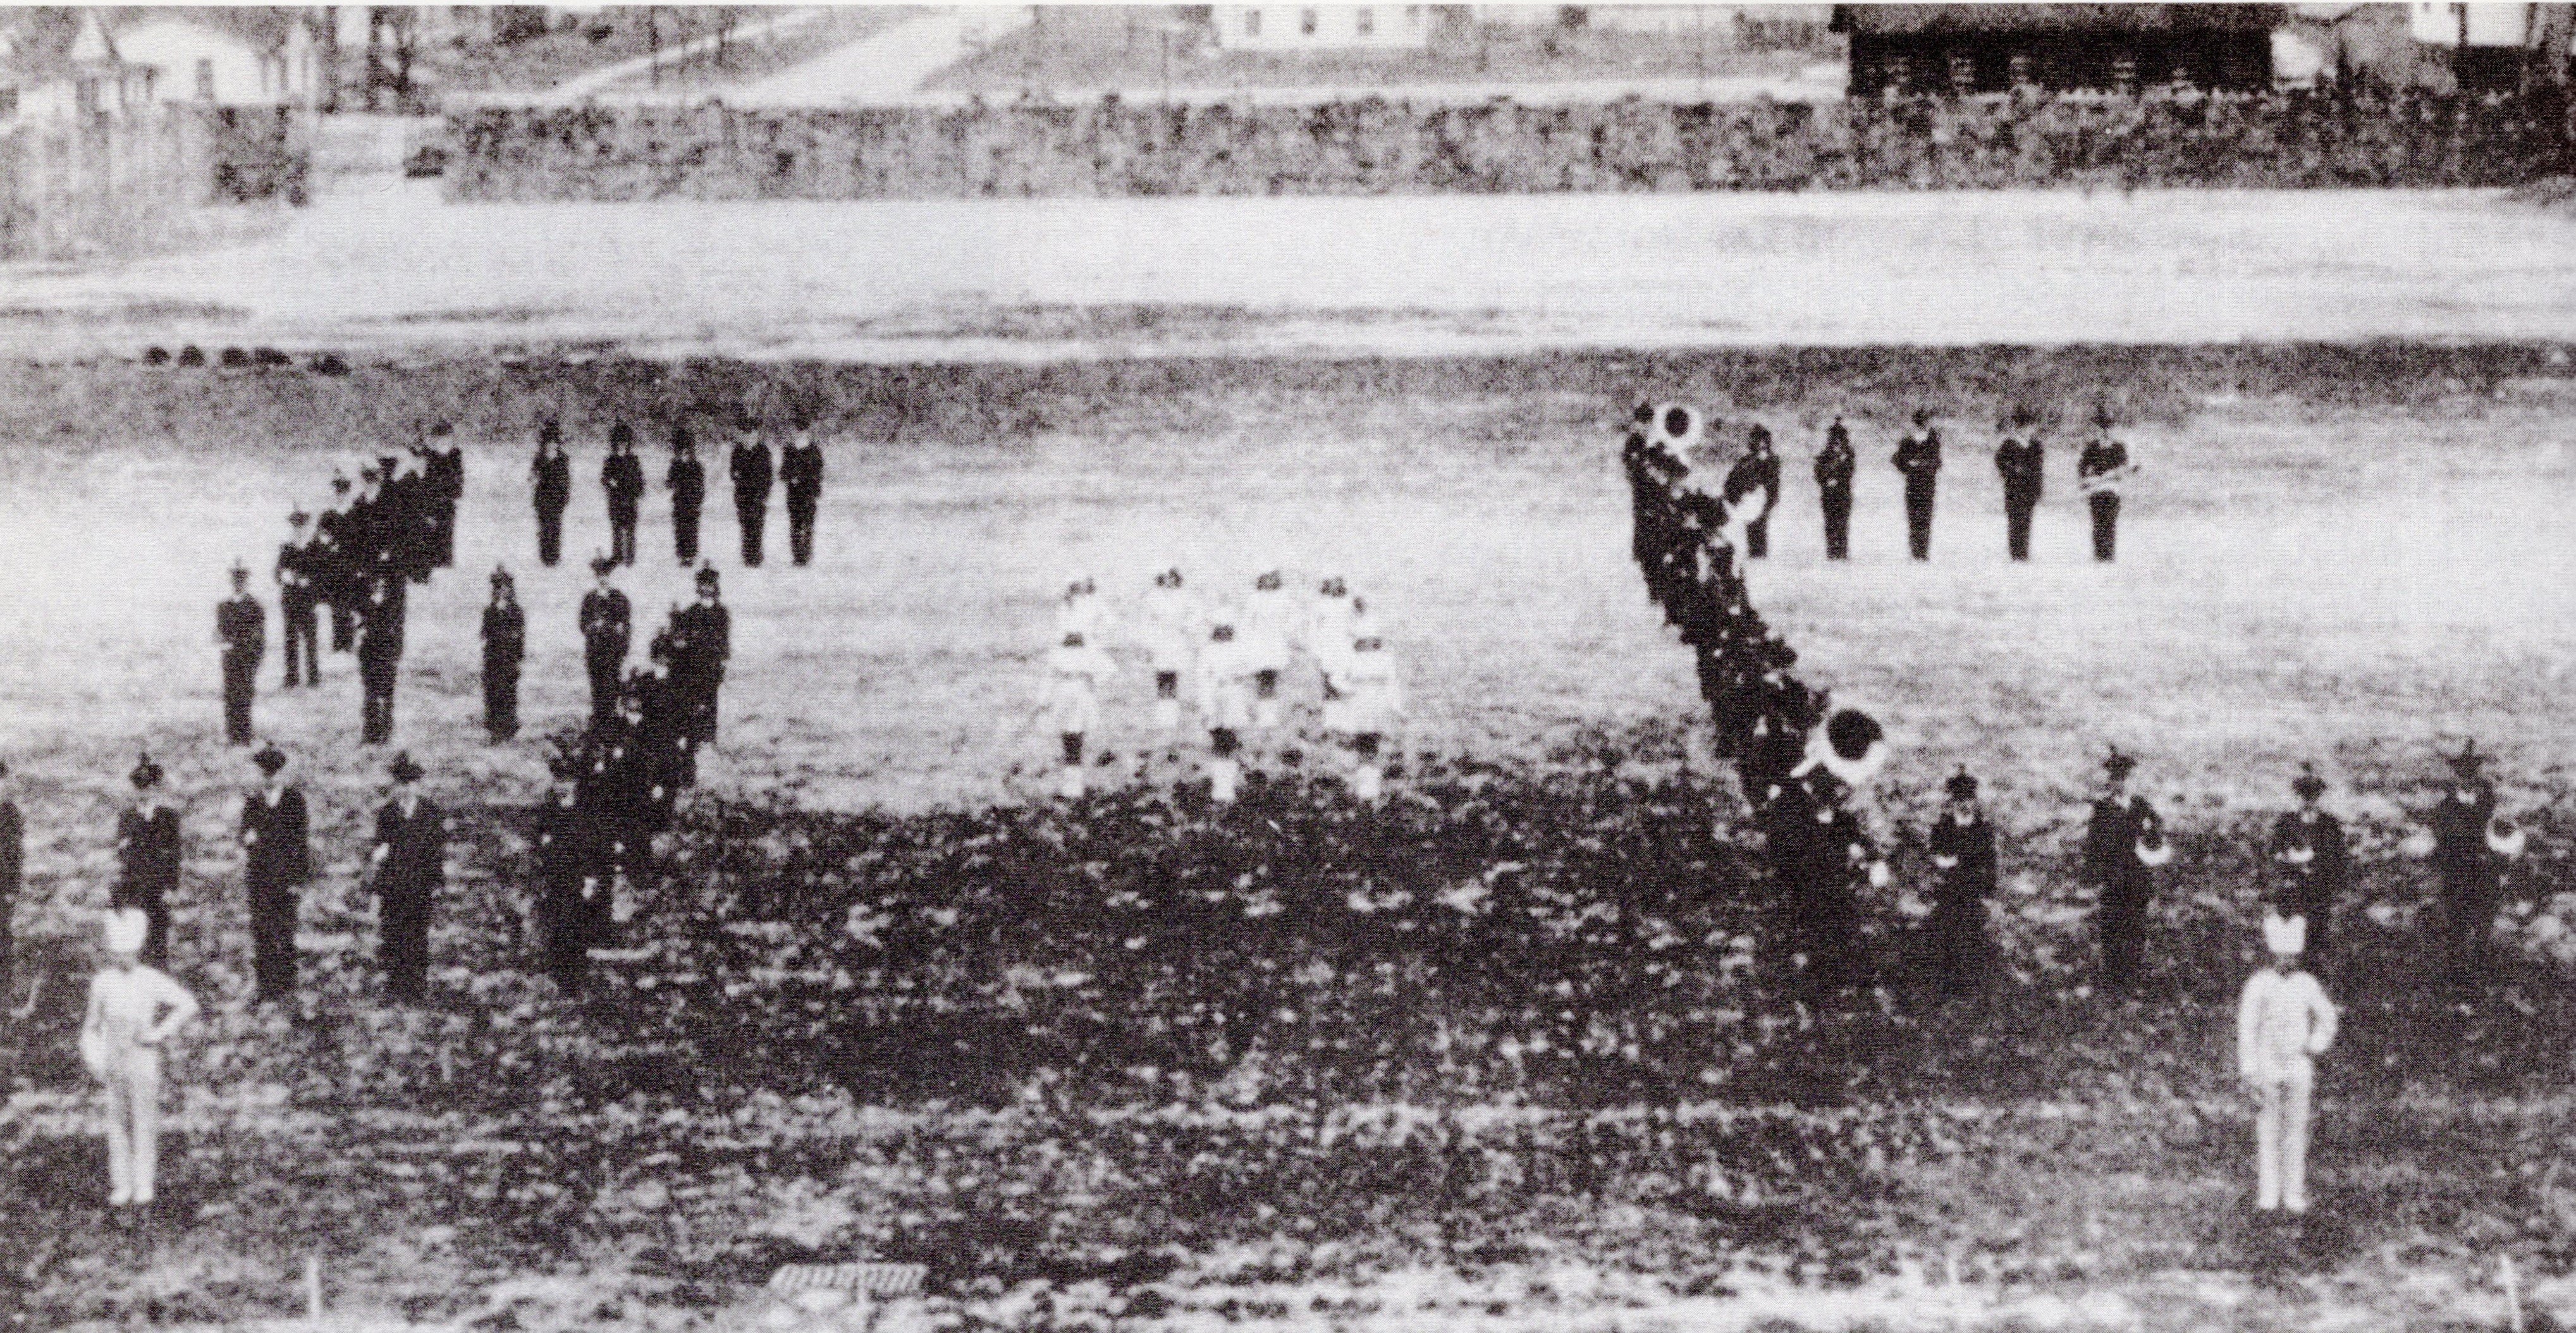 The South Charleston High School Band at Oakes Field in 1942. The field was only a year old, and the previous year SCHS's football team was undefeated for the first time. Courtesy of South Charleston Museum.